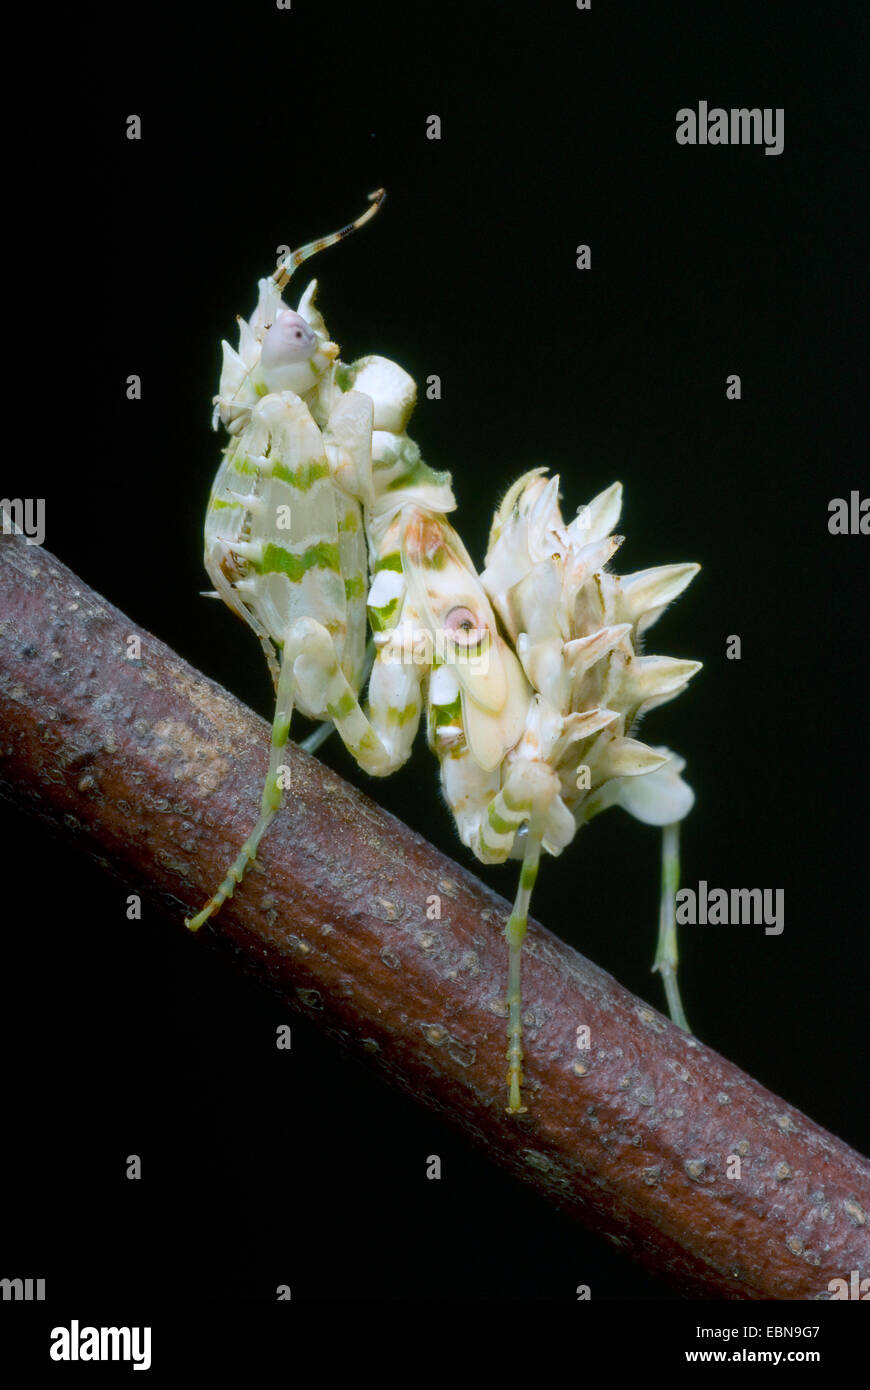 Wahlbergi's Spiny Flower Mantis, Wahlbergis Spiny Flower Mantis (Pseudocreobotra wahlbergi), on a branch - Stock Image